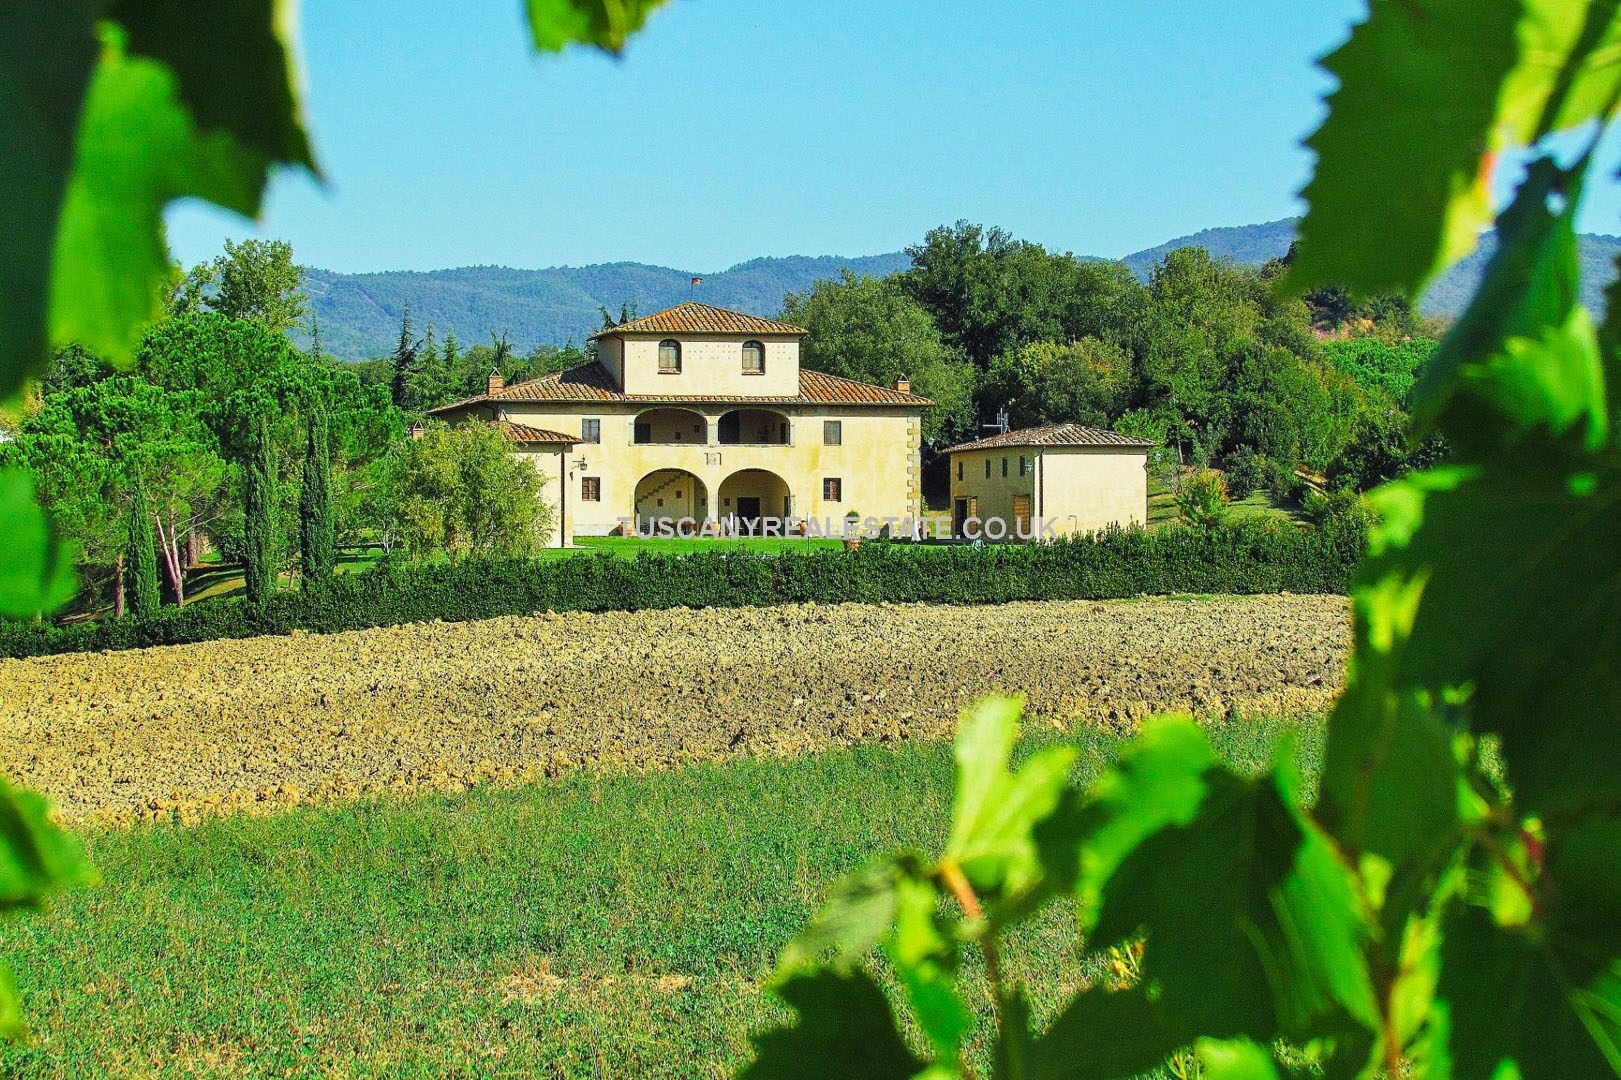 Superb restored 19th-century Luxury villa for sale in Italy. Located near to Arezzo in Tuscany